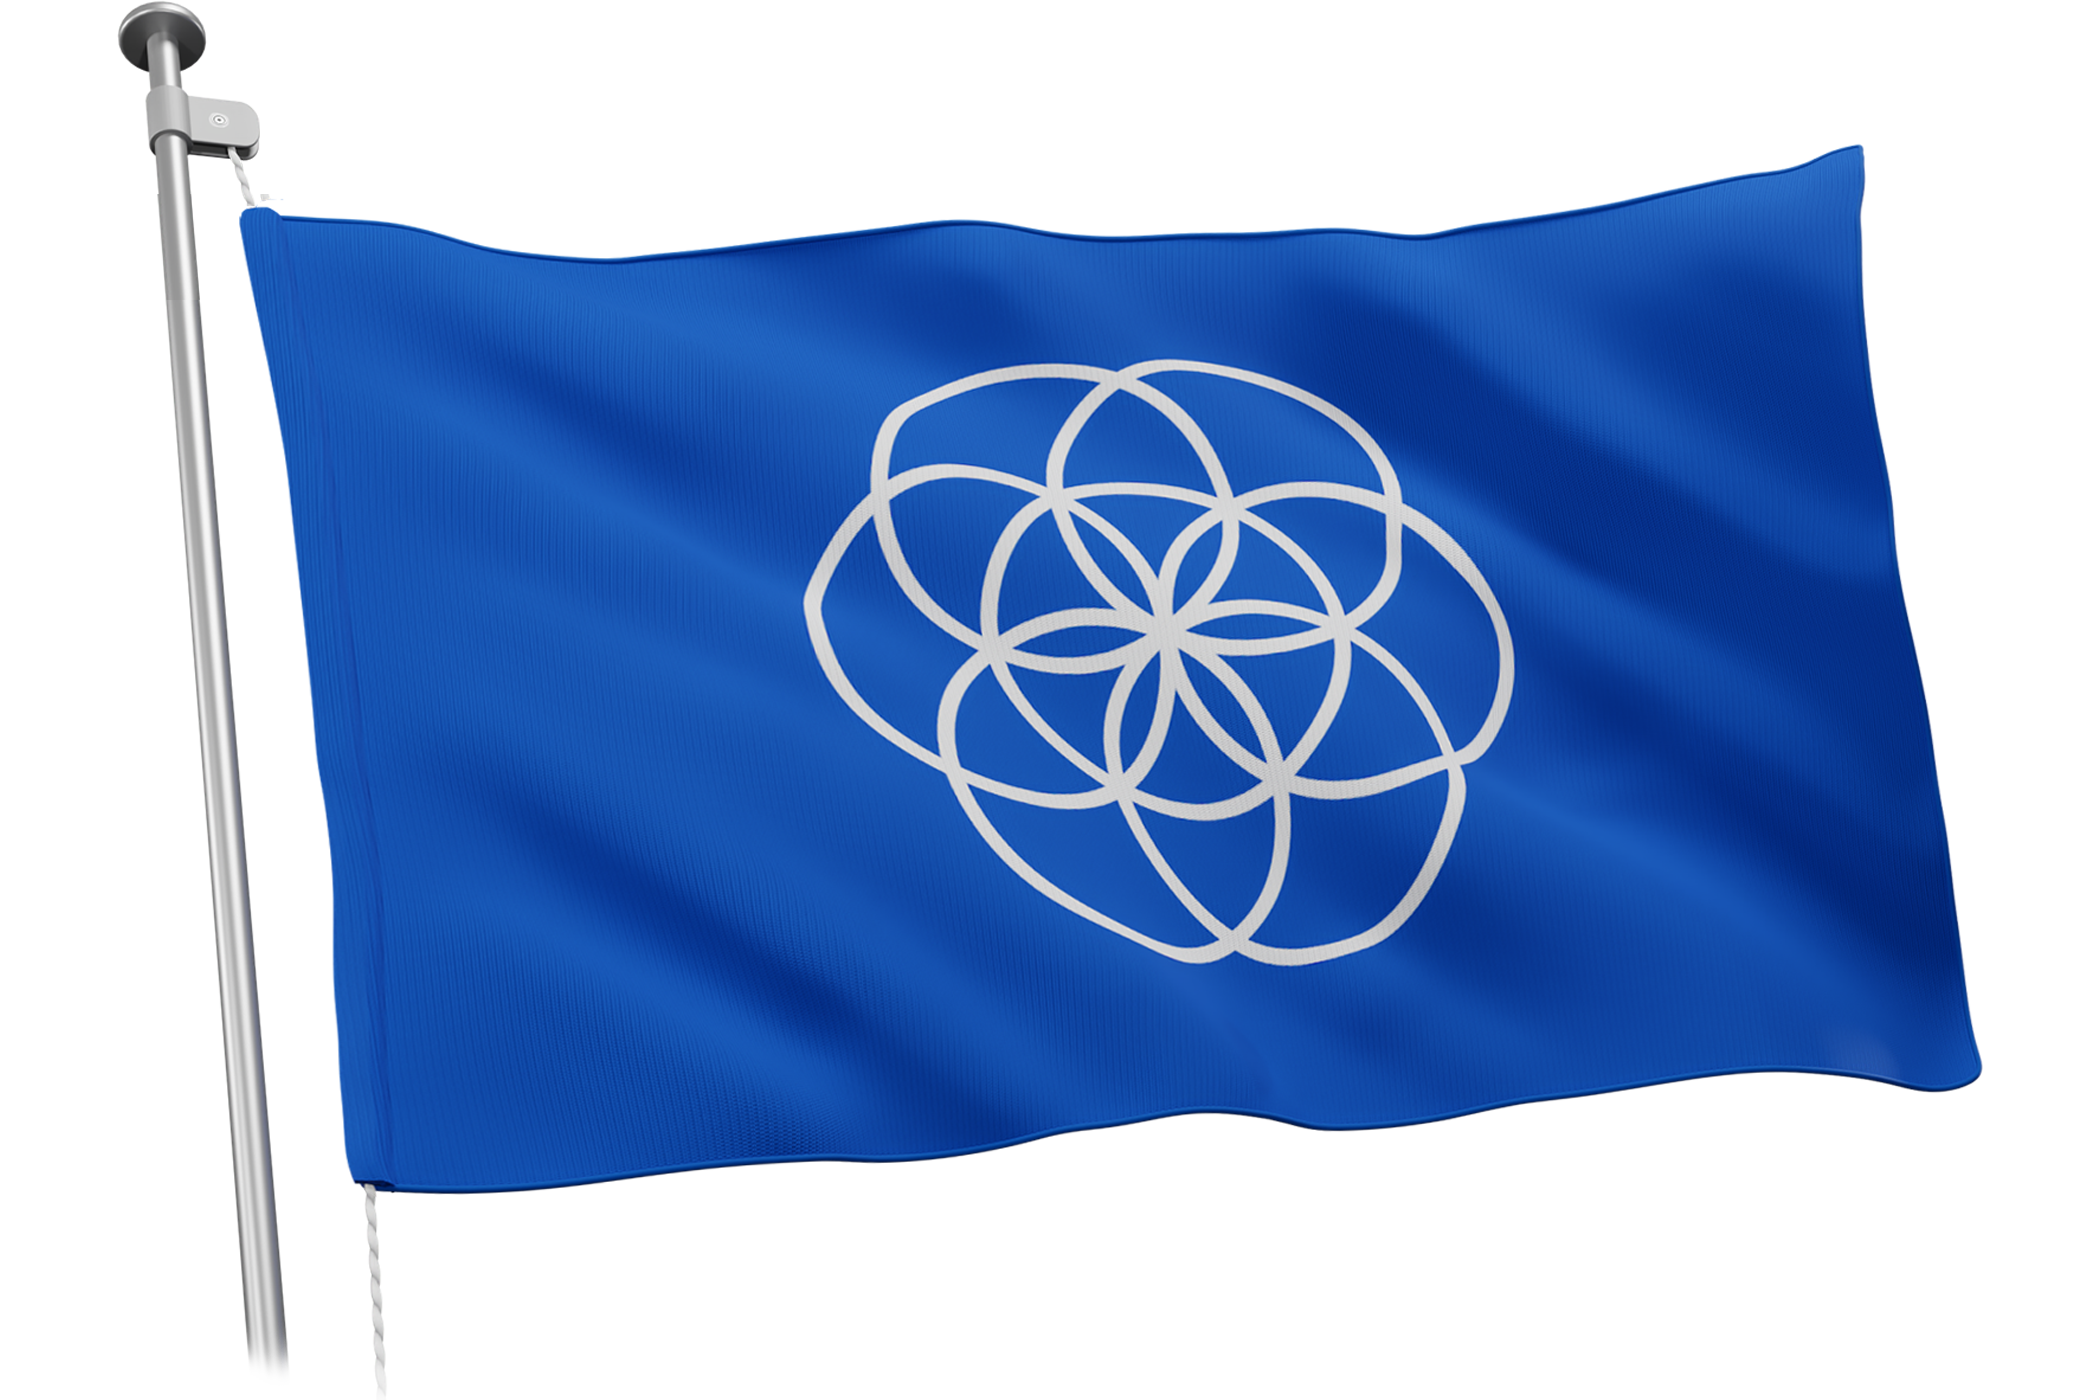 The Earth flag - Blue. To encourage a sustainable environment